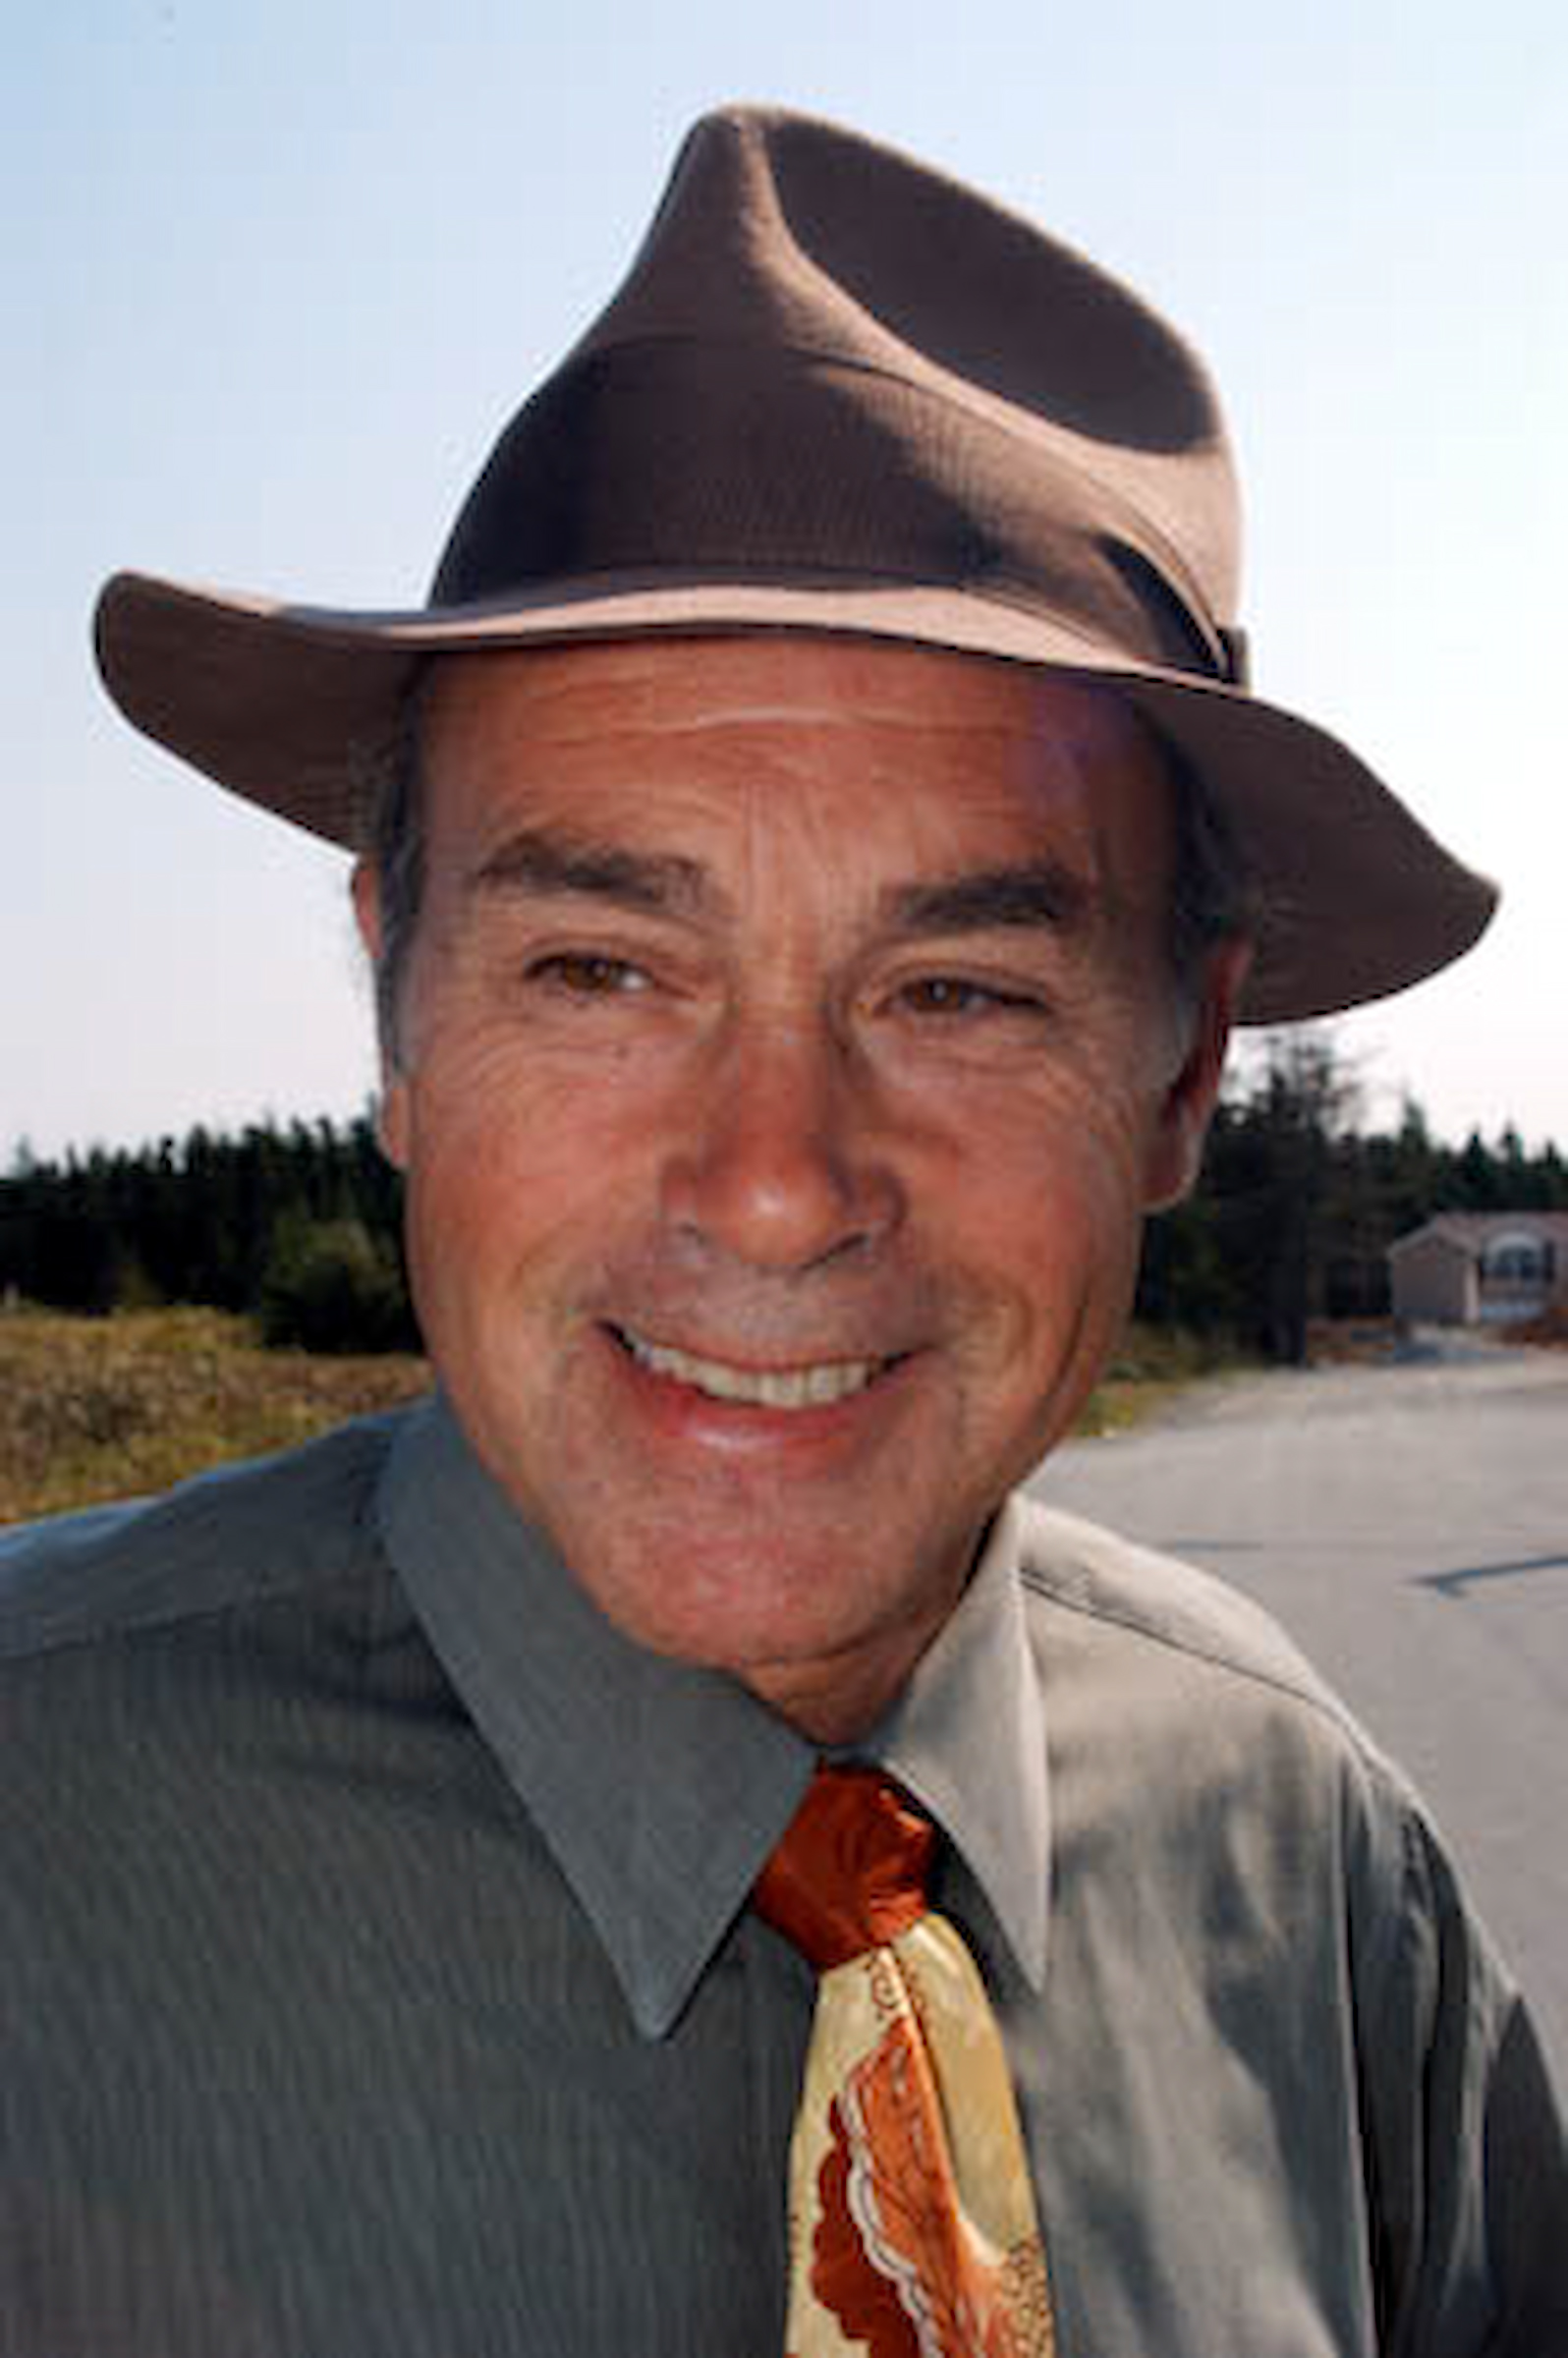 john dunsworthjohn dunsworth sarah dunsworth related, john dunsworth imdb, john dunsworth, john dunsworth the candidate, john dunsworth net worth, john dunsworth interview, john dunsworth book, john dunsworth haven, john dunsworth twitter, john dunsworth young, john dunsworth yacht, john dunsworth house, john dunsworth tour, john dunsworth santa quest, john dunsworth drunk, john dunsworth ama, john dunsworth height